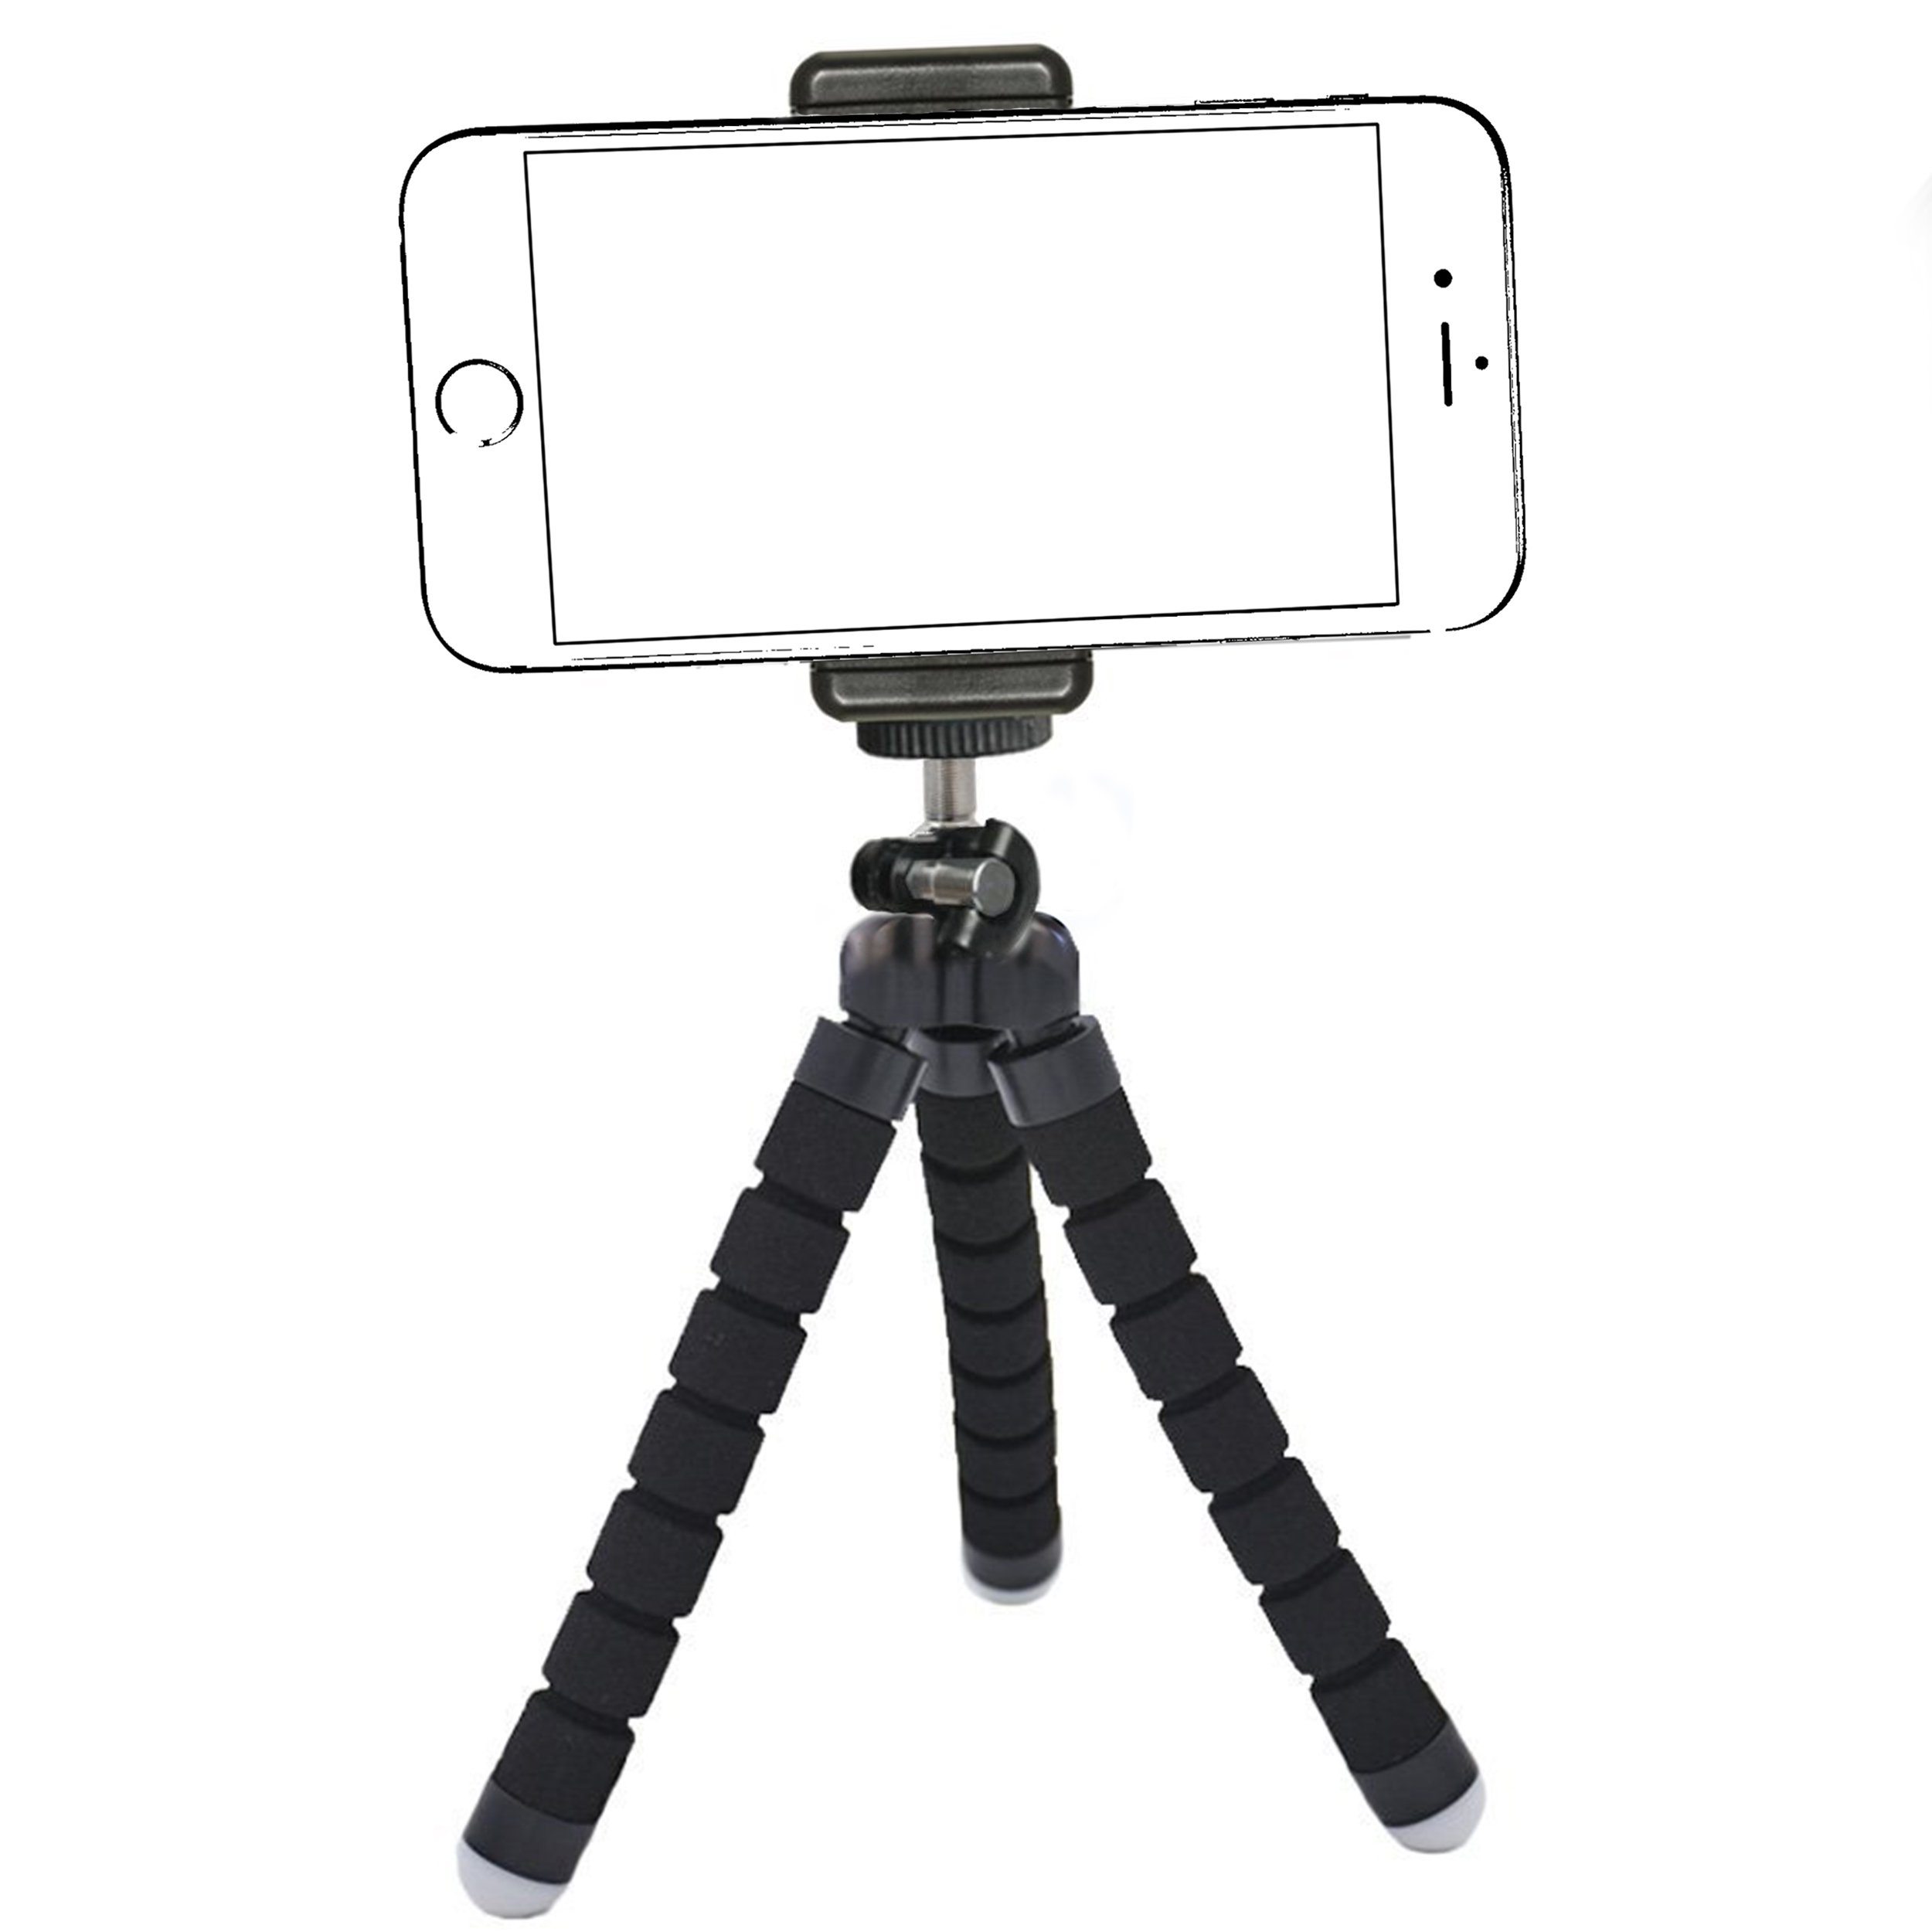 Details about iPhone Tripod,by Ailun,Tripod Mount/Stand,Phone  Holder,Compact for iPhone